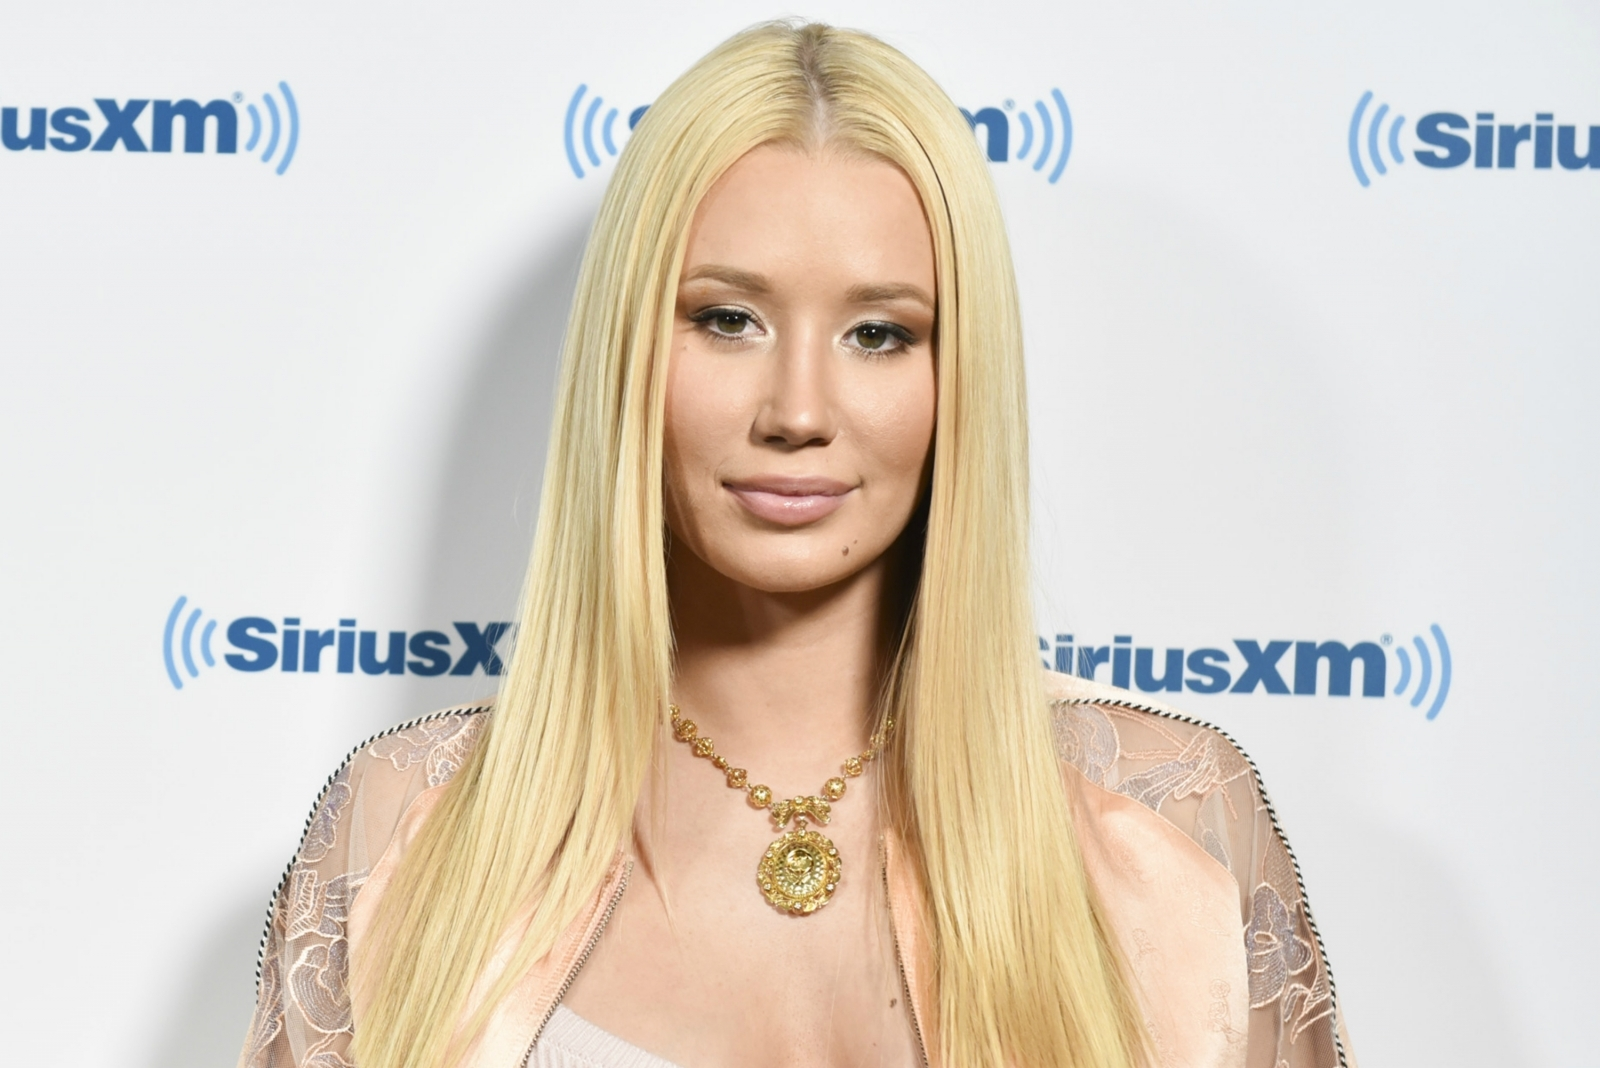 Topless Iggy Azalea barely covers her breasts in racy Instagram selfies: 'Getting awfully desperate'